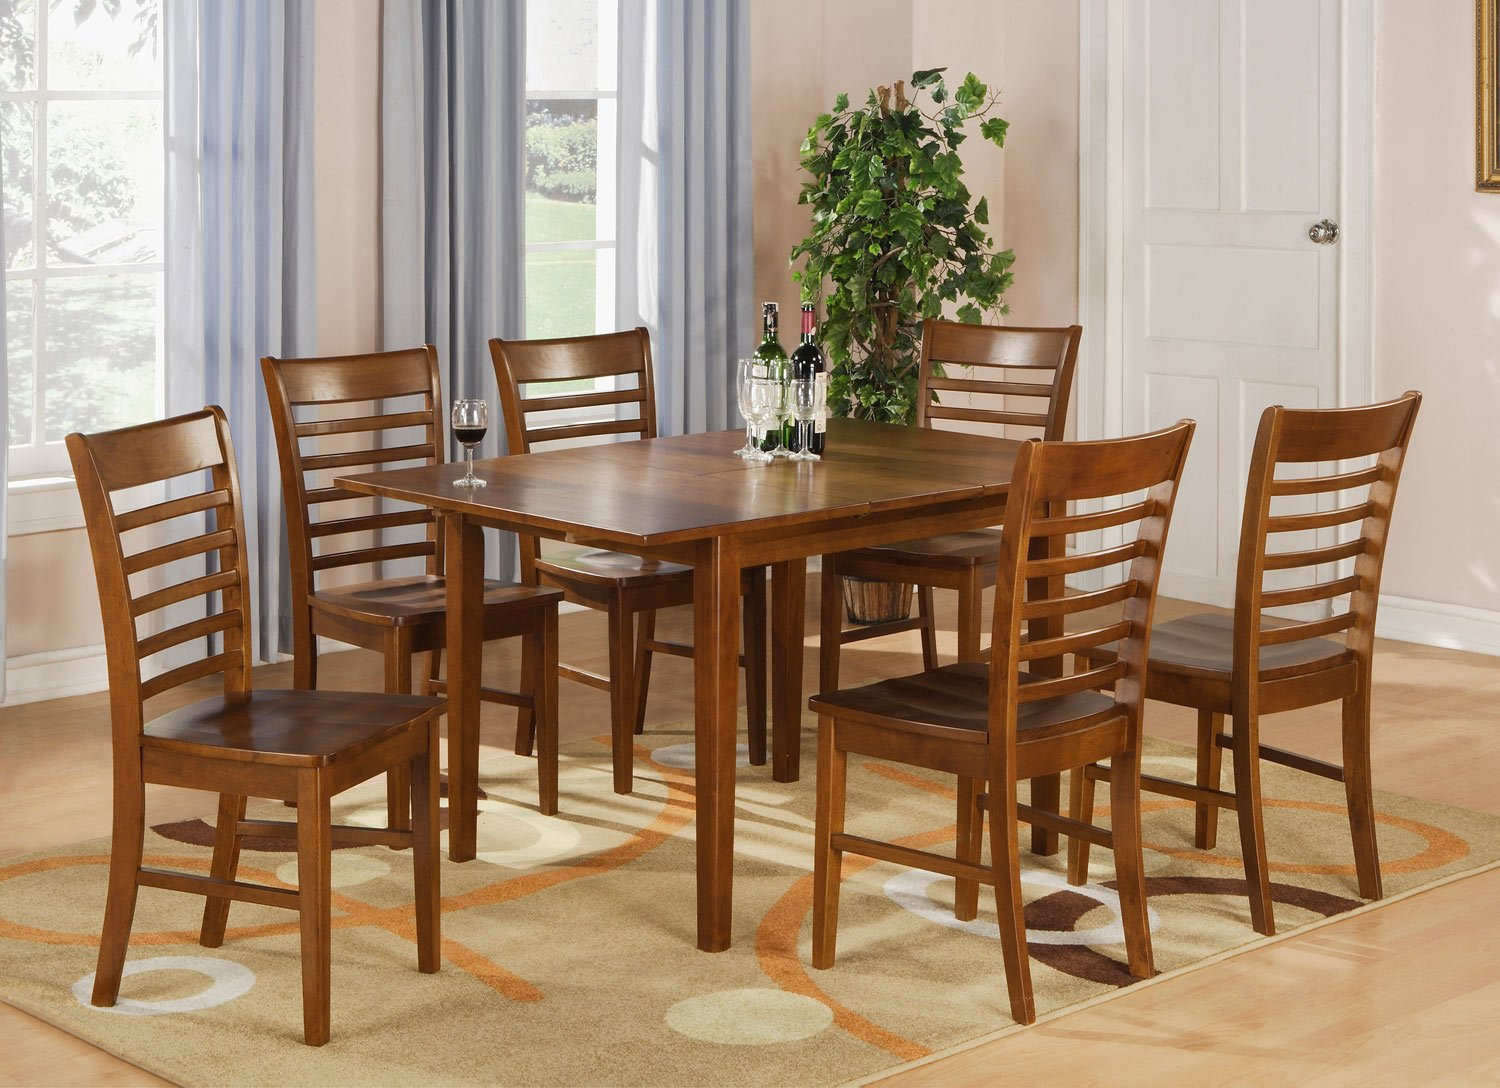 Milan 5 pc rectangular dinette dining table set 36 x 54 for 12 chair dining table set